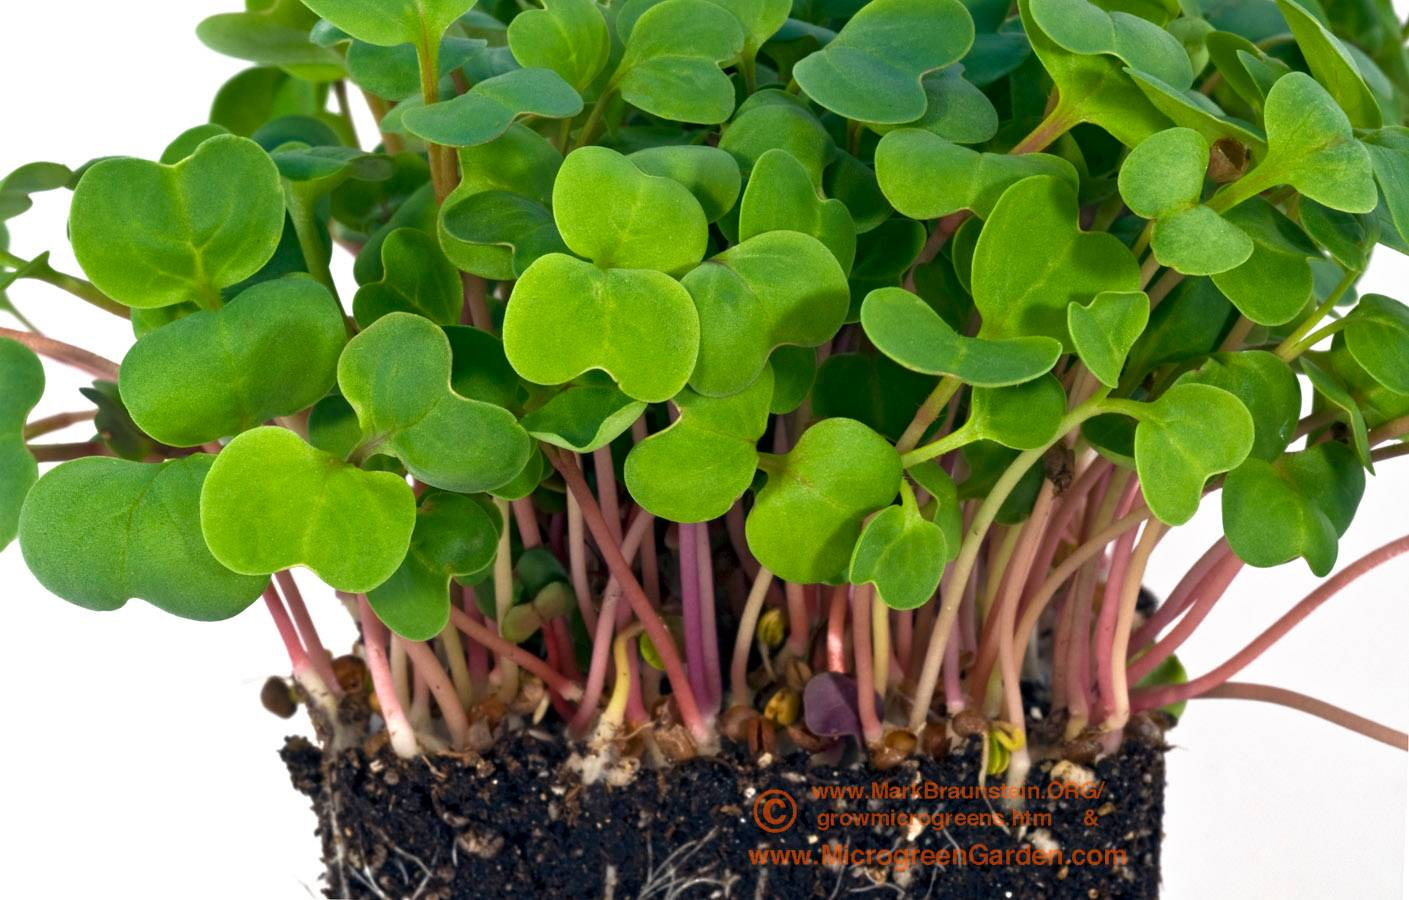 RED RADISH microgreens, 6 days since sown